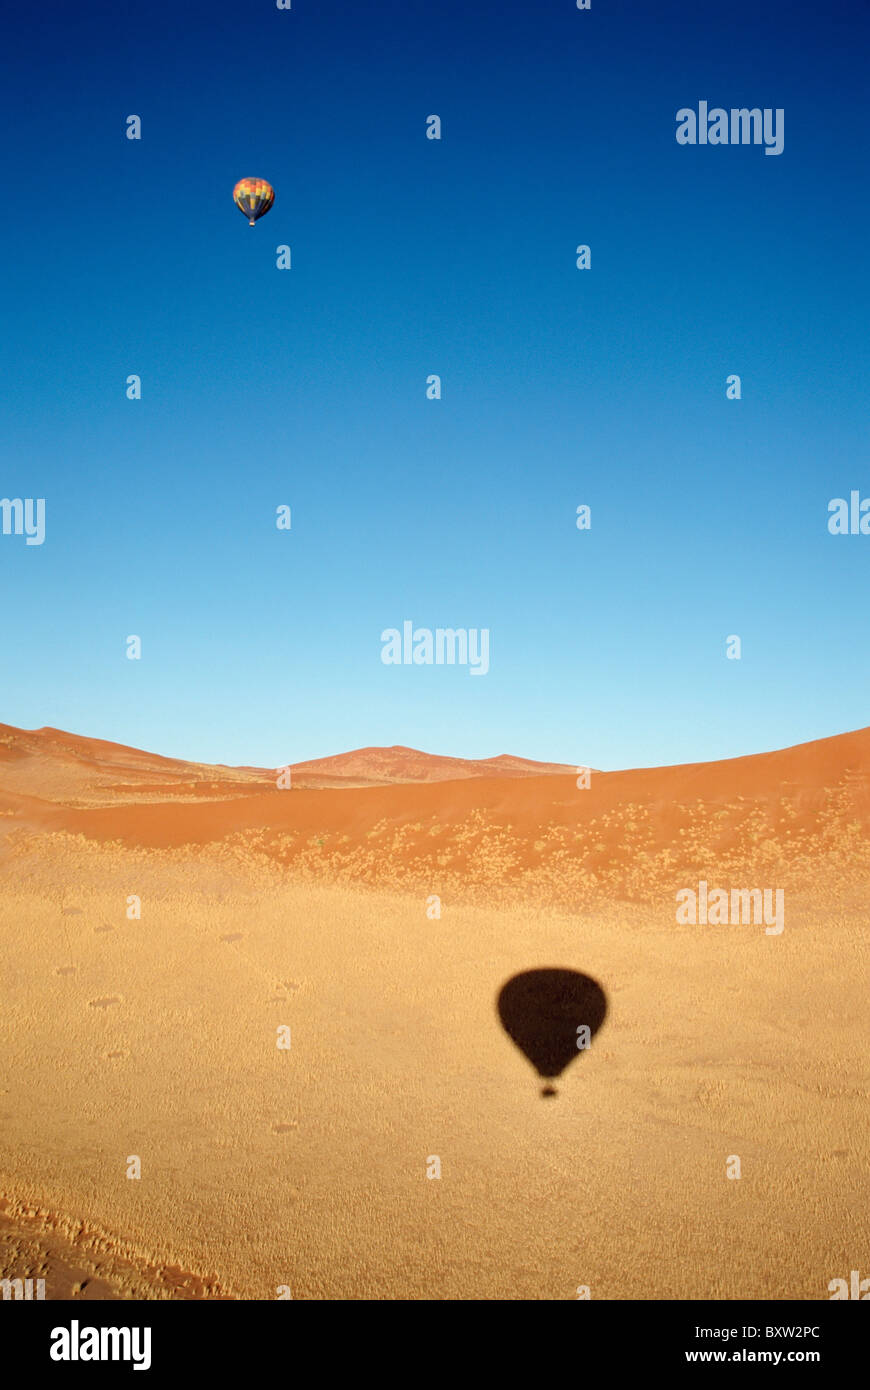 Hot Air Ballooning Over Namib Desert - Stock Image